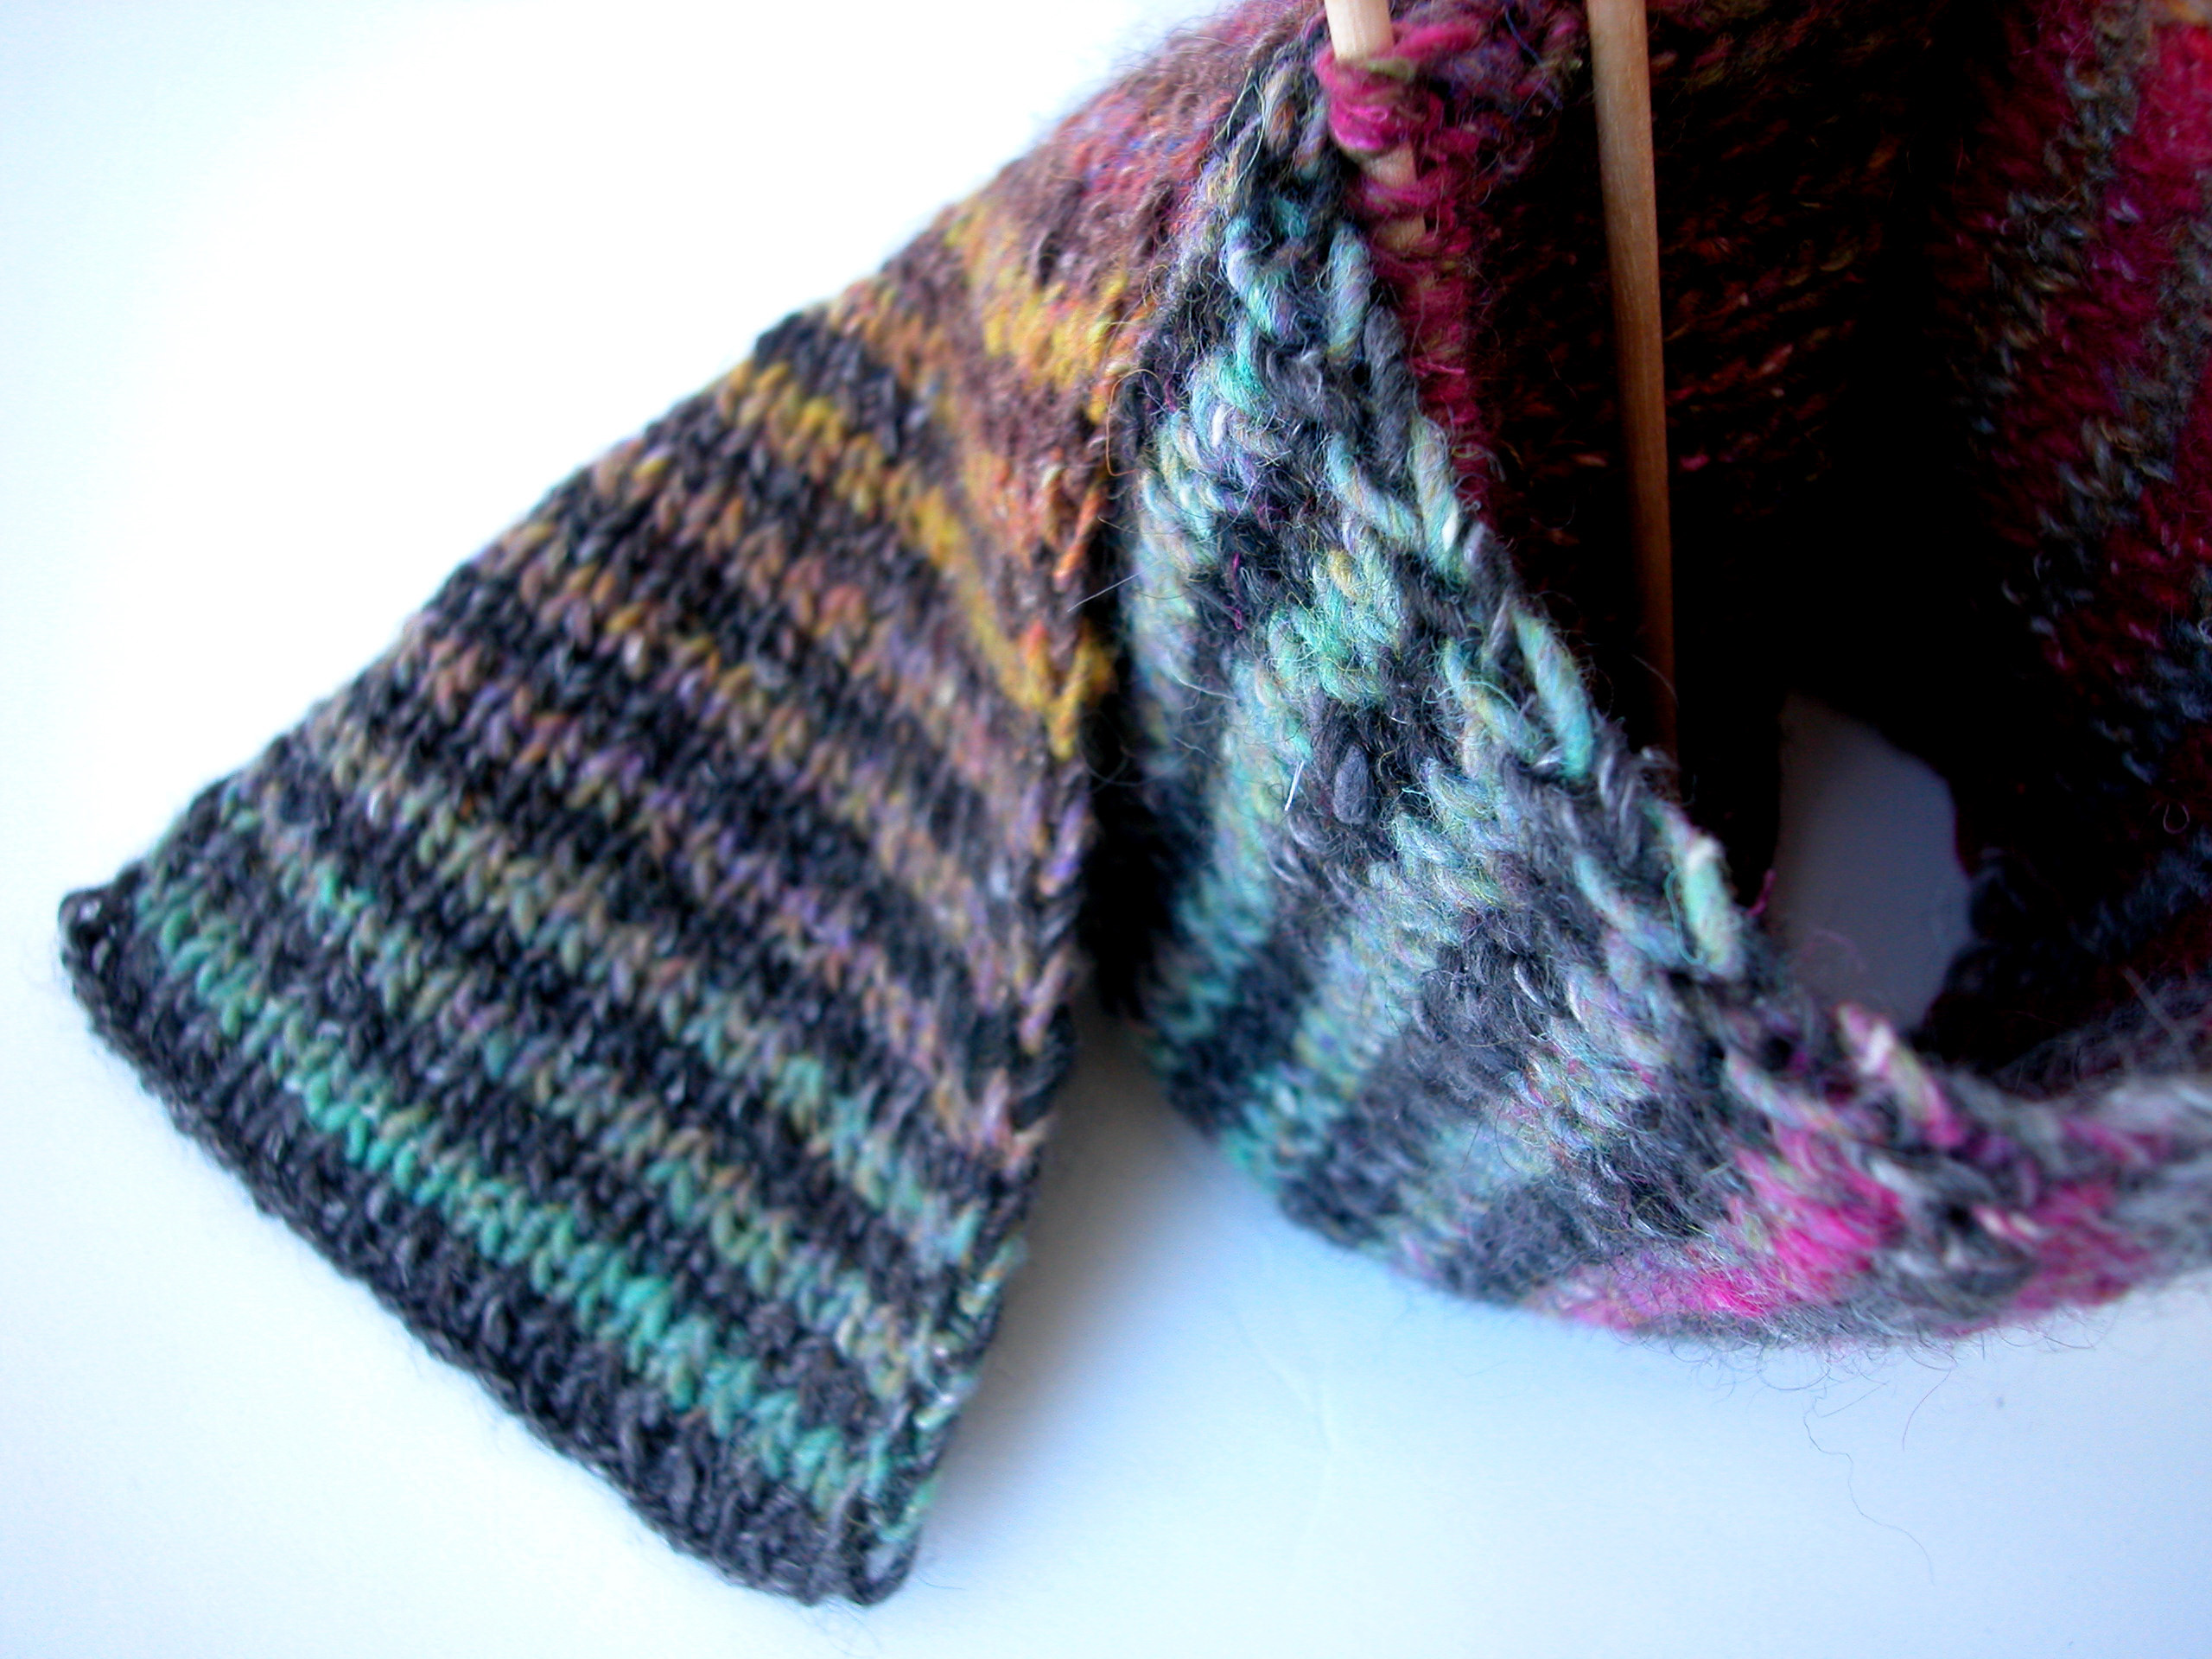 Knitting Pattern For Noro Wool : noro yarn the knit cafe